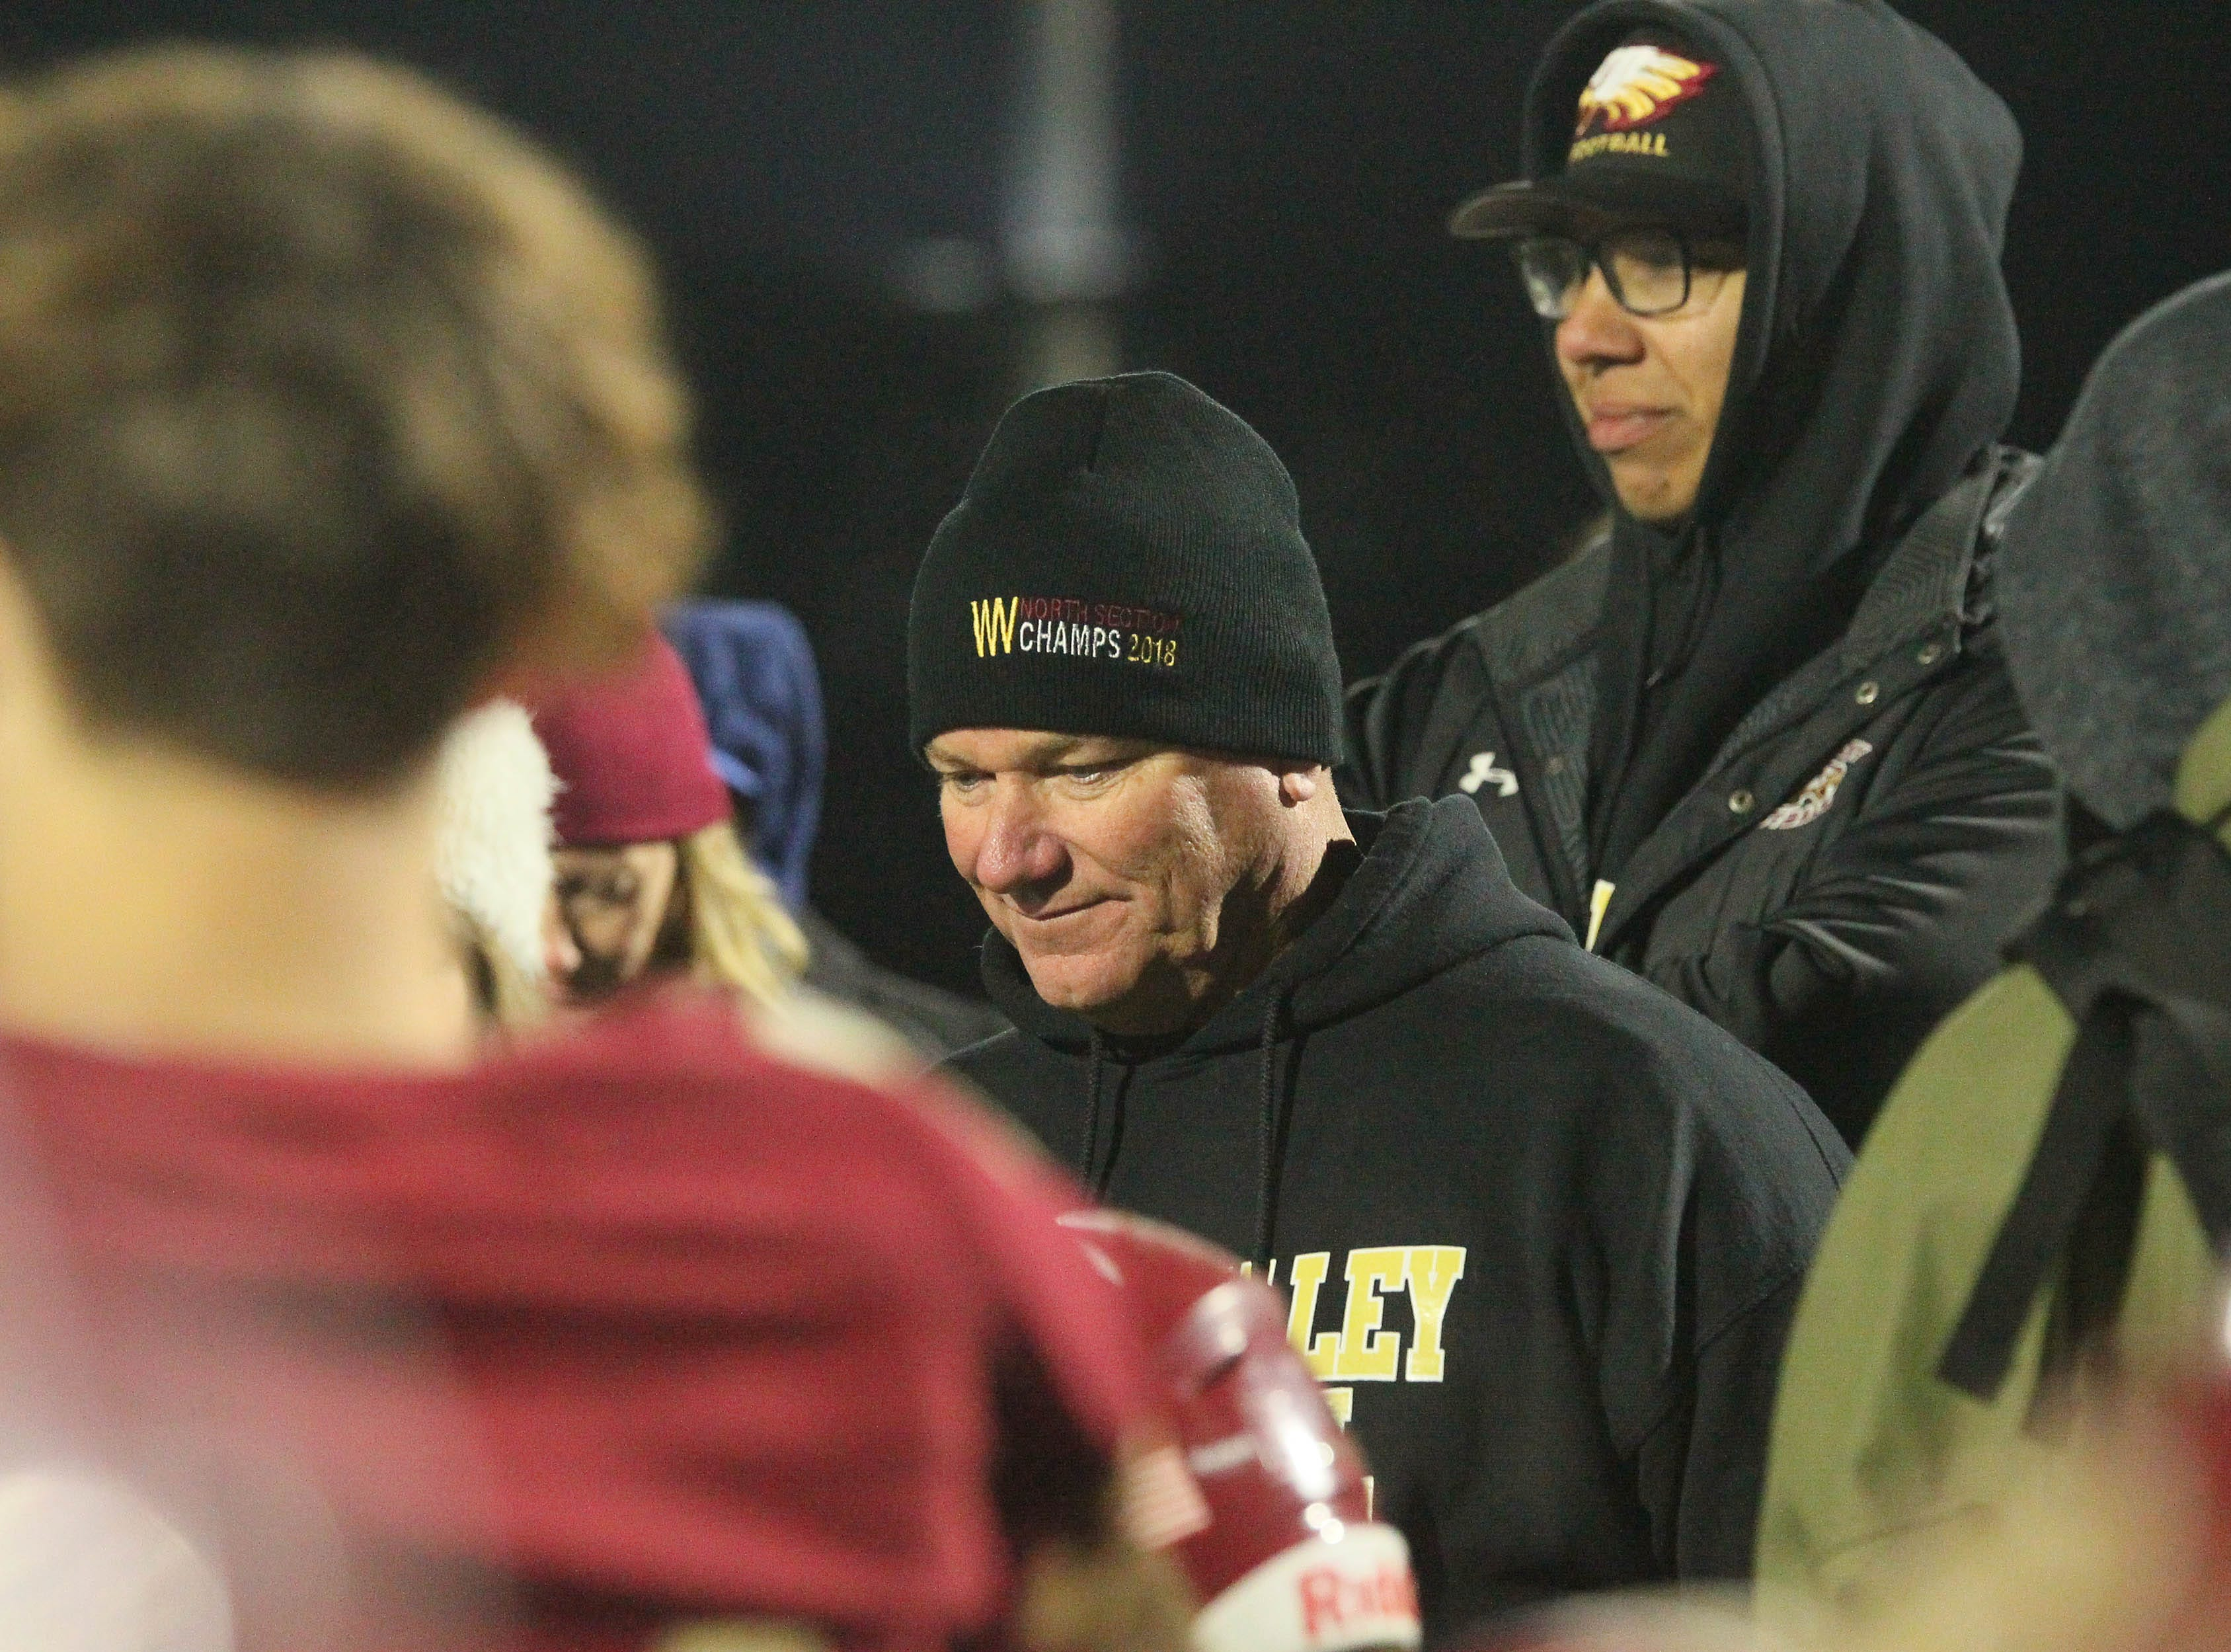 West Valley head coach, Greg Grandell, listens to other coach speaking to the team after the game.   Rio Linda beat the Eagles, 21-13, to take the NorCal regional title for Division 5-AA in Red Bluff on Friday, Dec. 7.